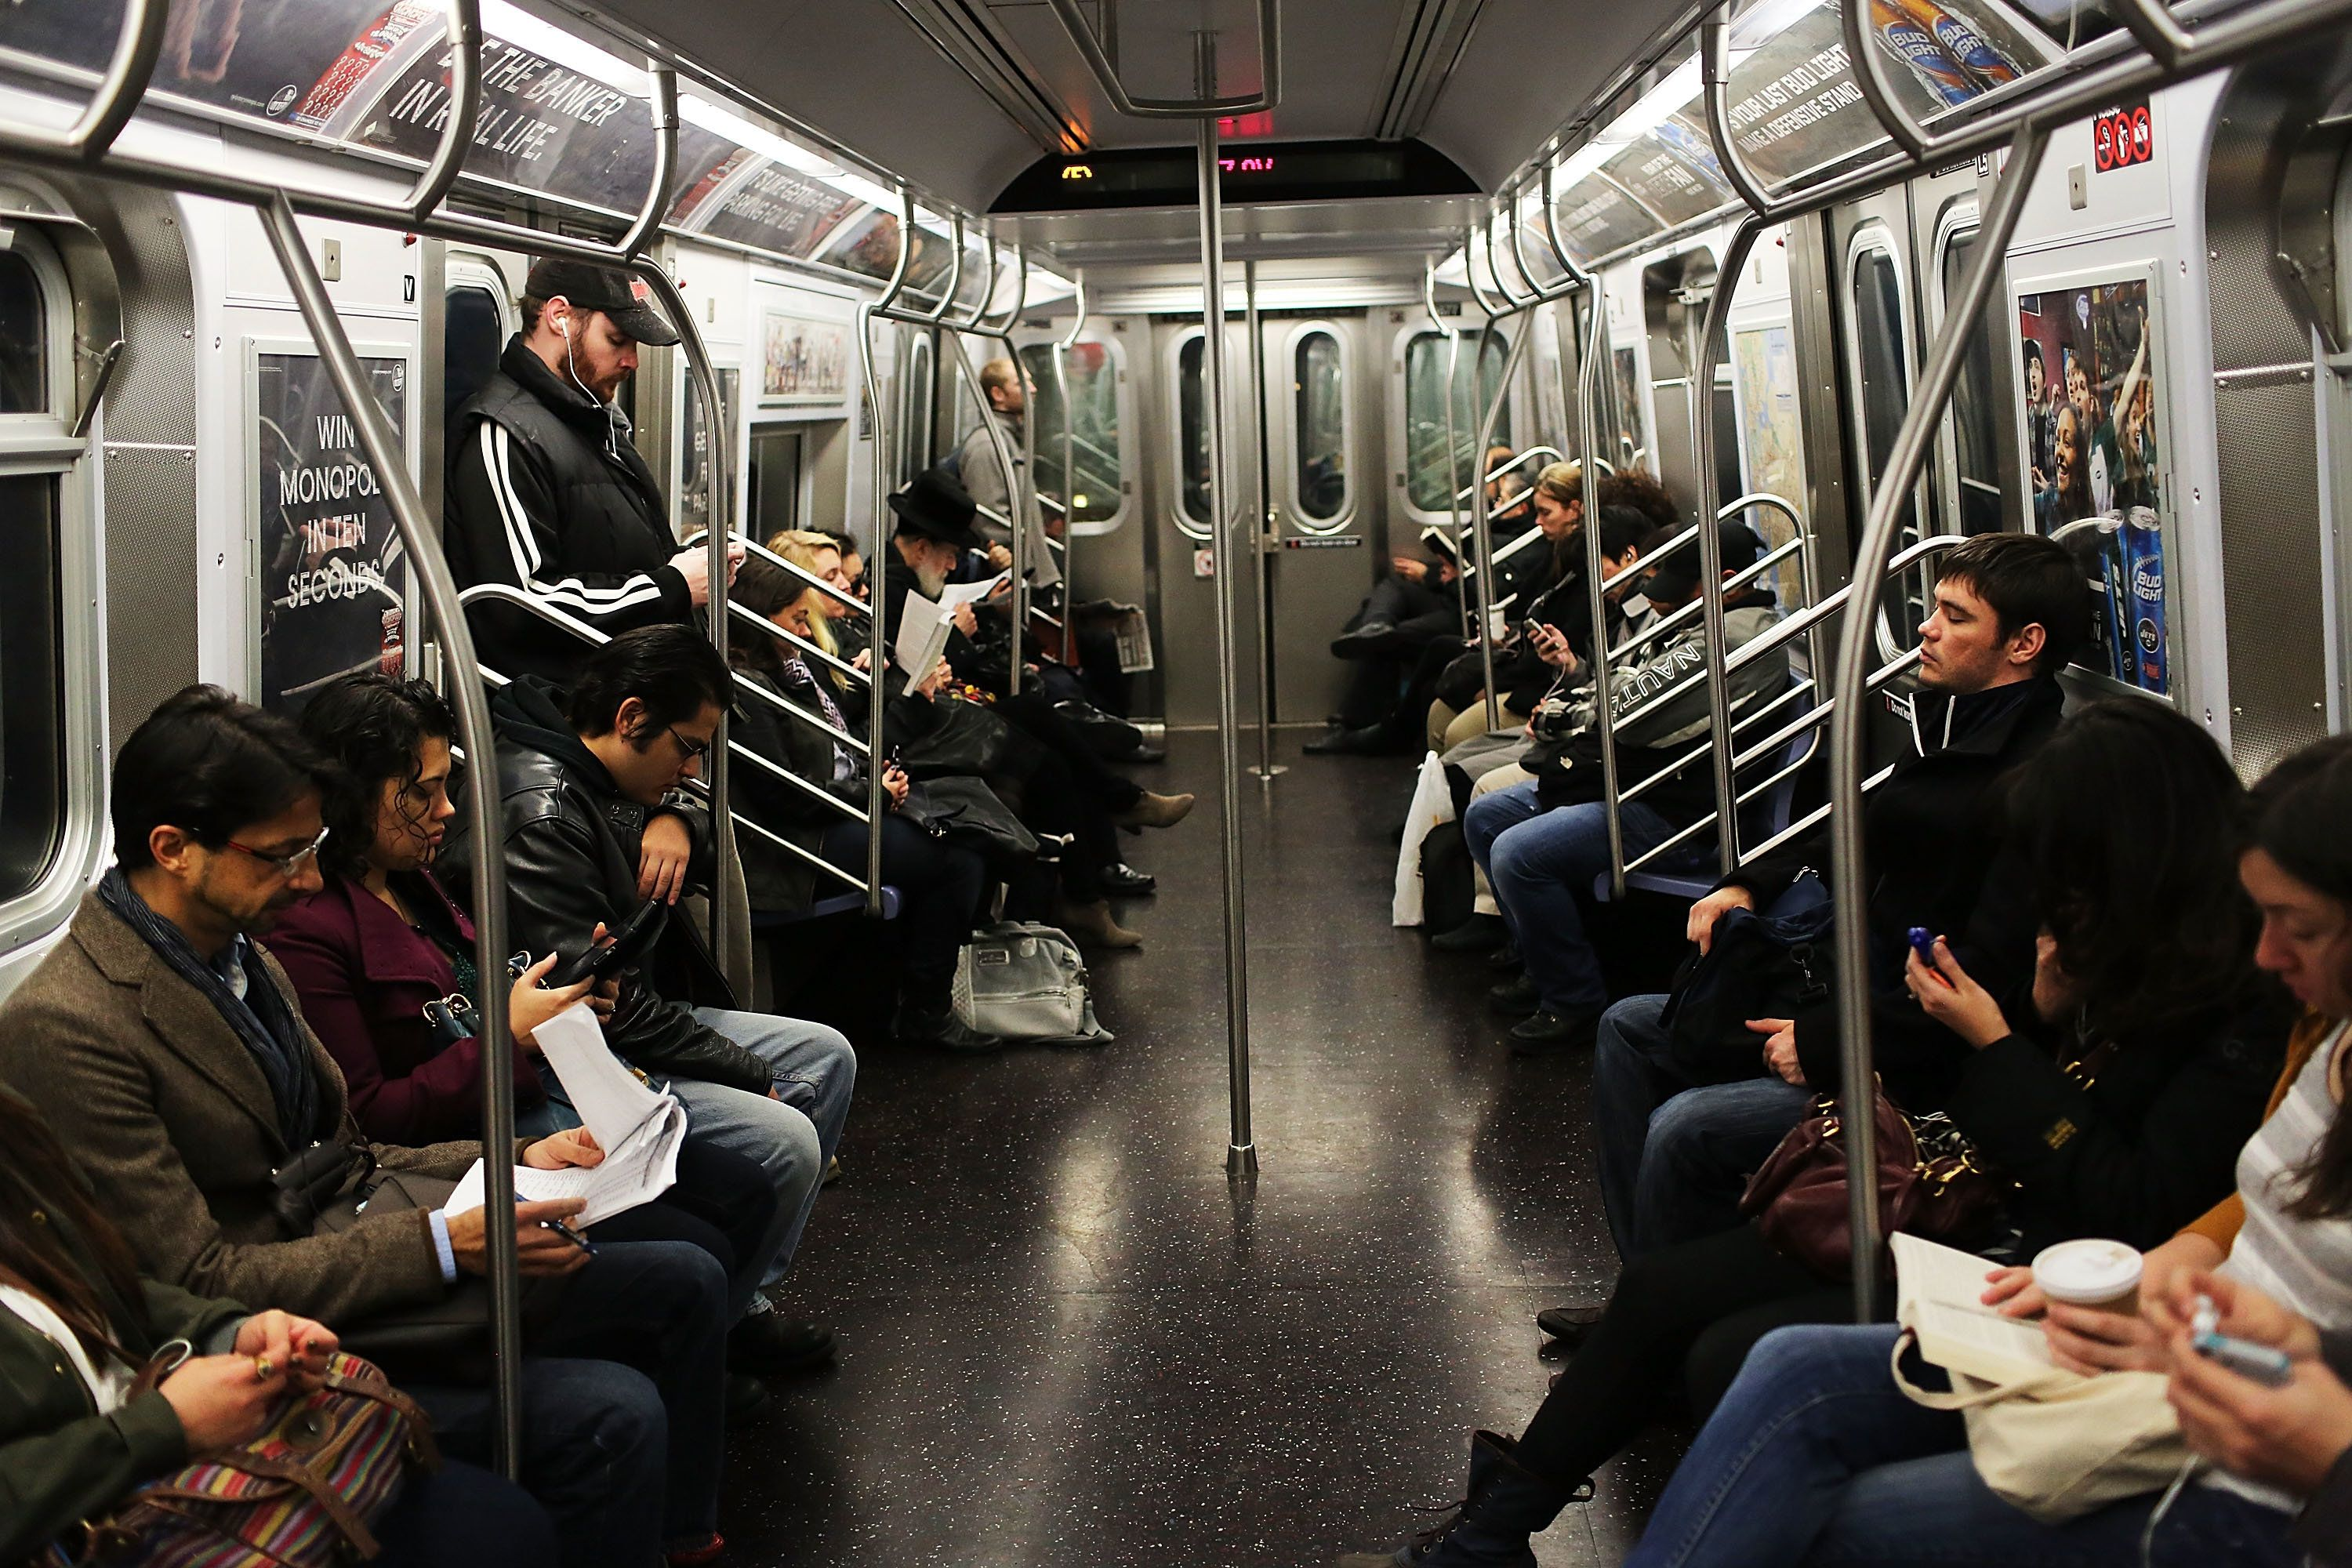 NEW YORK, NY - DECEMBER 05:  Passengers ride in a subway car two days after a man was pushed to his death in front of a train on December 5, 2012 in New York City. The incident was caught by a photographer and has since raised questions as to why someone didn't help the man before the train struck him. The New York City subway system, with 468 stations in operation, is the most extensive public transportation system in the world. It is also one of the world's oldest public transit systems, with the first underground line of the subway opening on October 27, 1904.  (Photo by Spencer Platt/Getty Images)